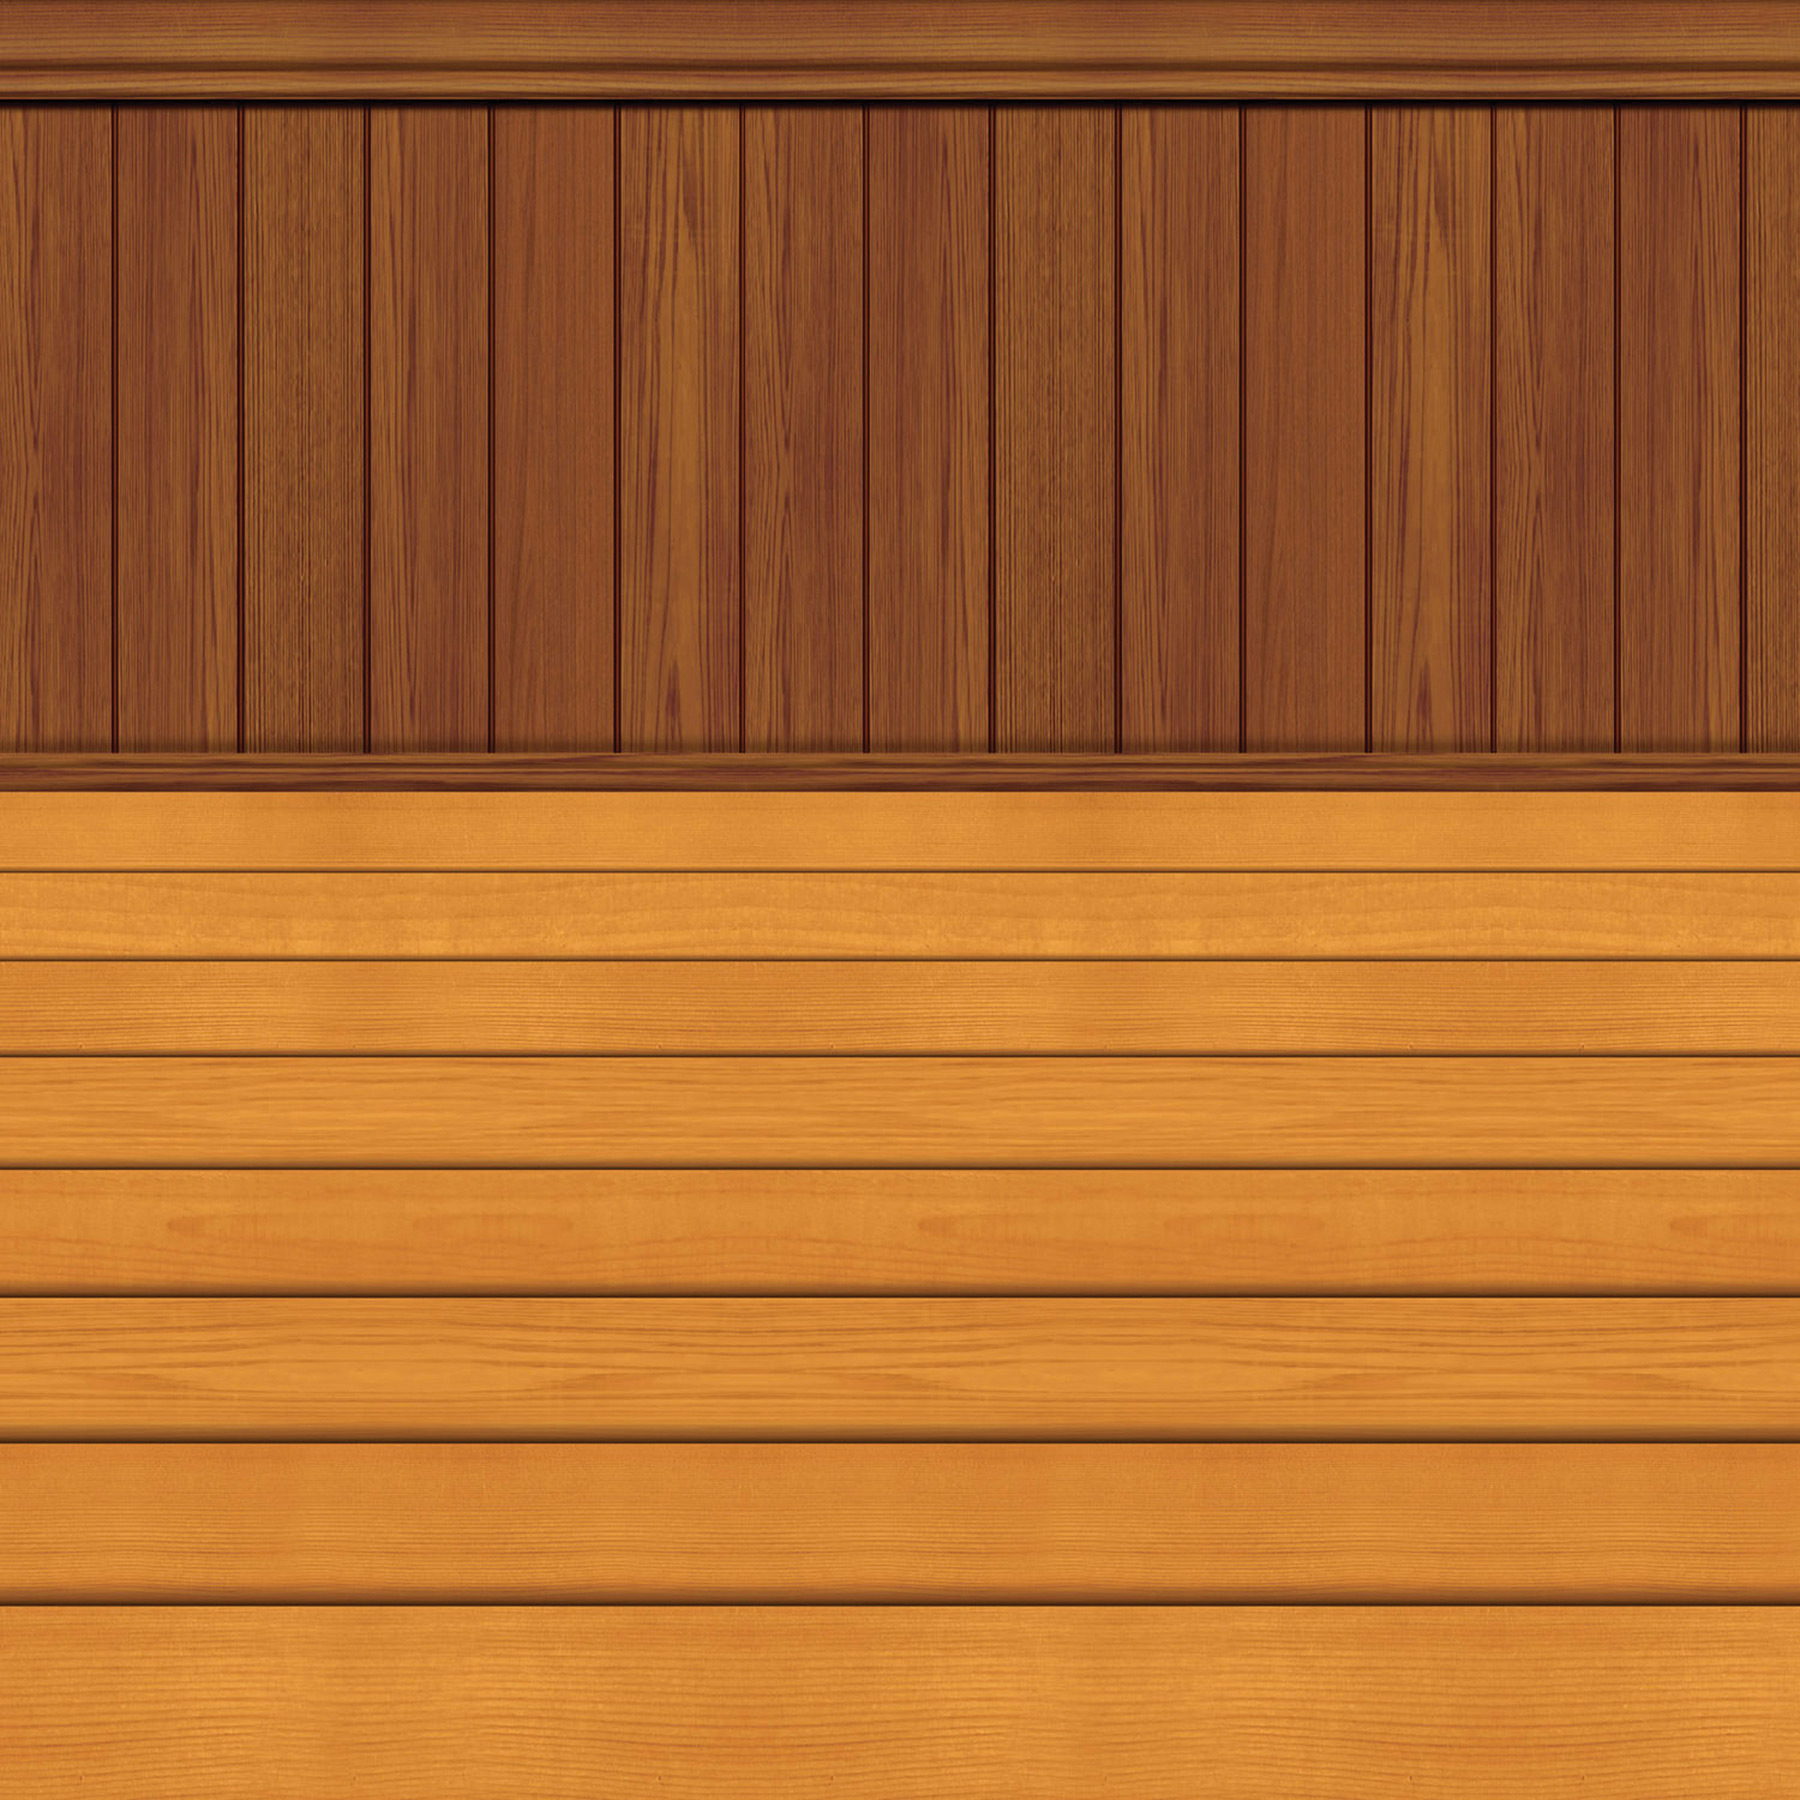 Featured Image for Floor/Wainscoting Backdrop